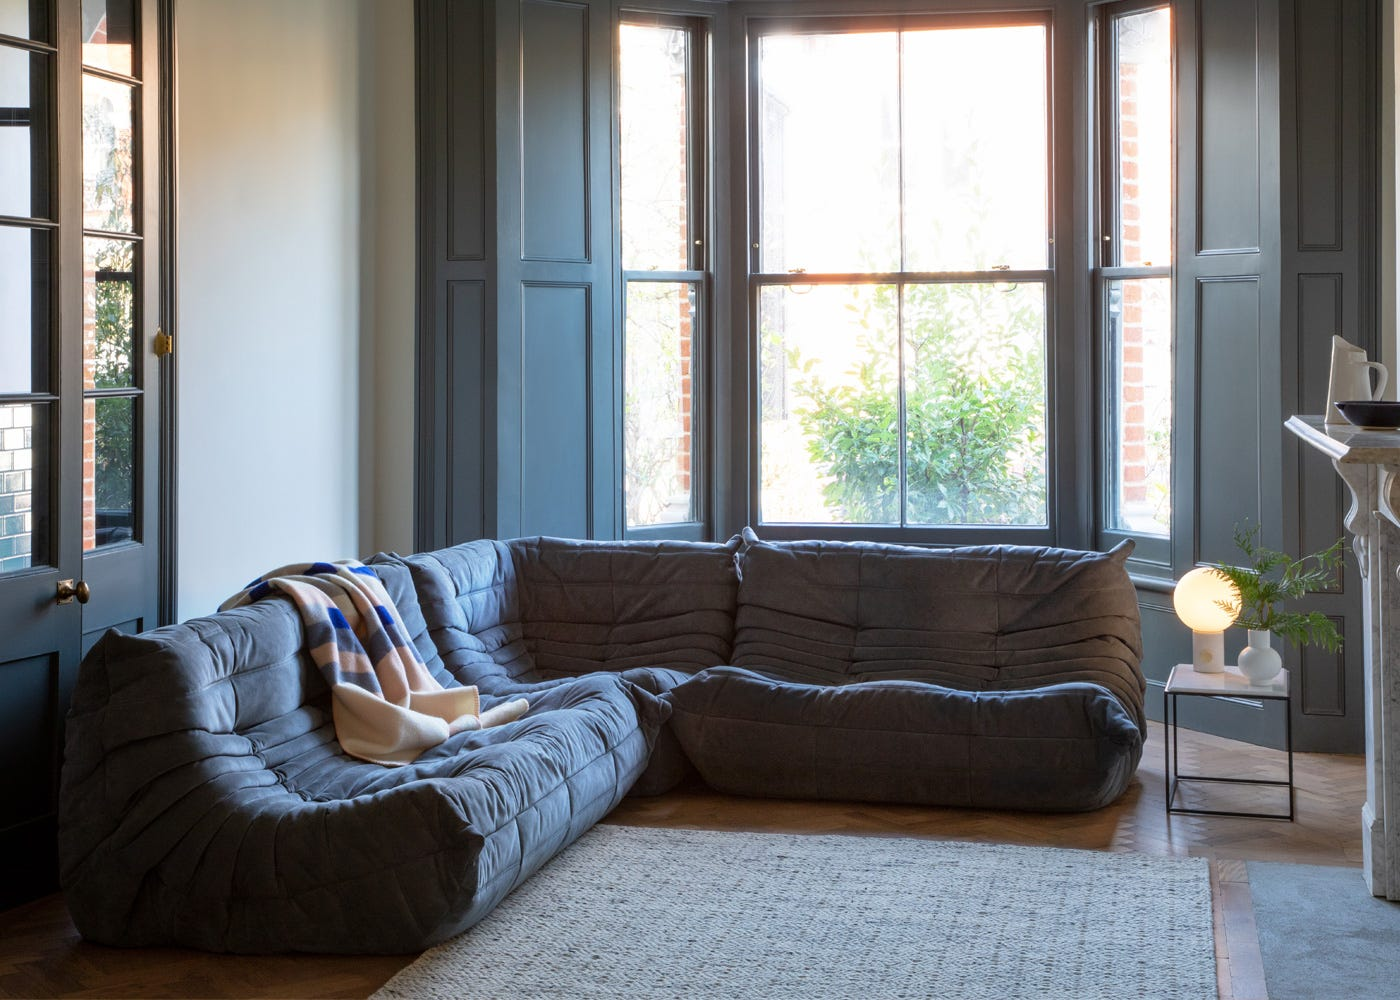 Togo Complete Corner in Alcantara Chic Grey. Pair your Large Settee with the Small Settee and Corner Seat to complete this look